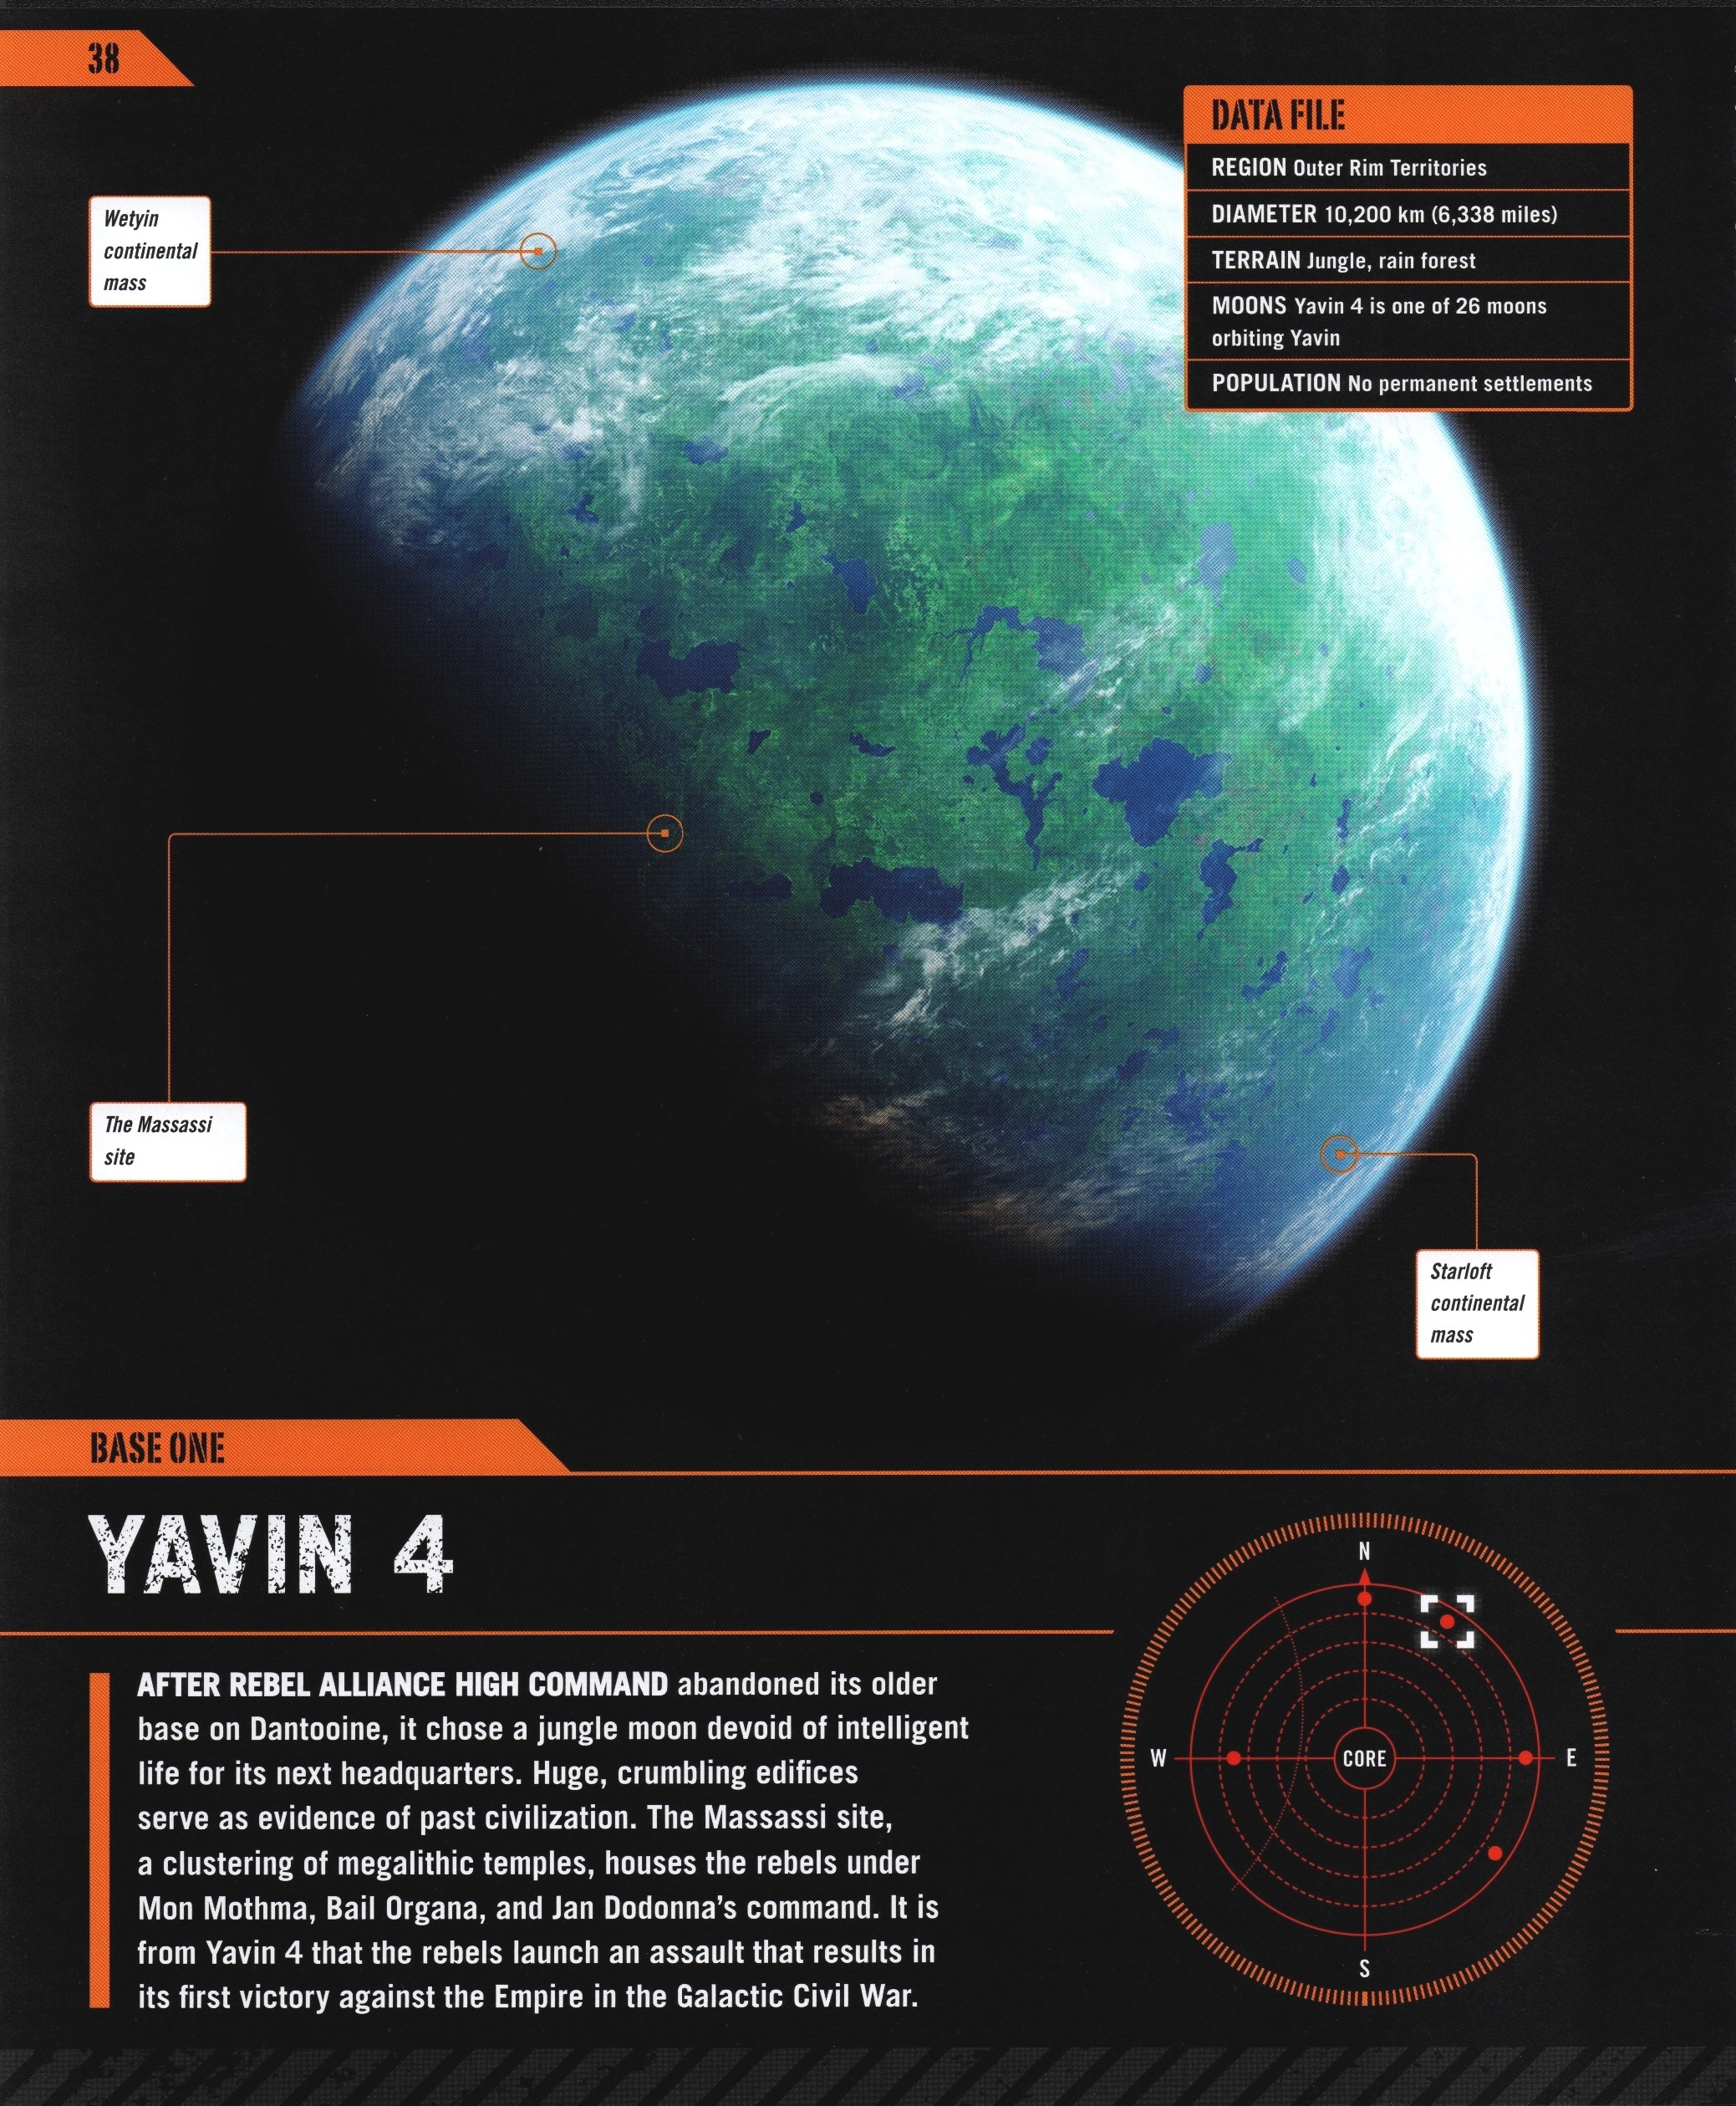 Rogue One Ultimate Visual Guide (b0bafett_Empire) p038